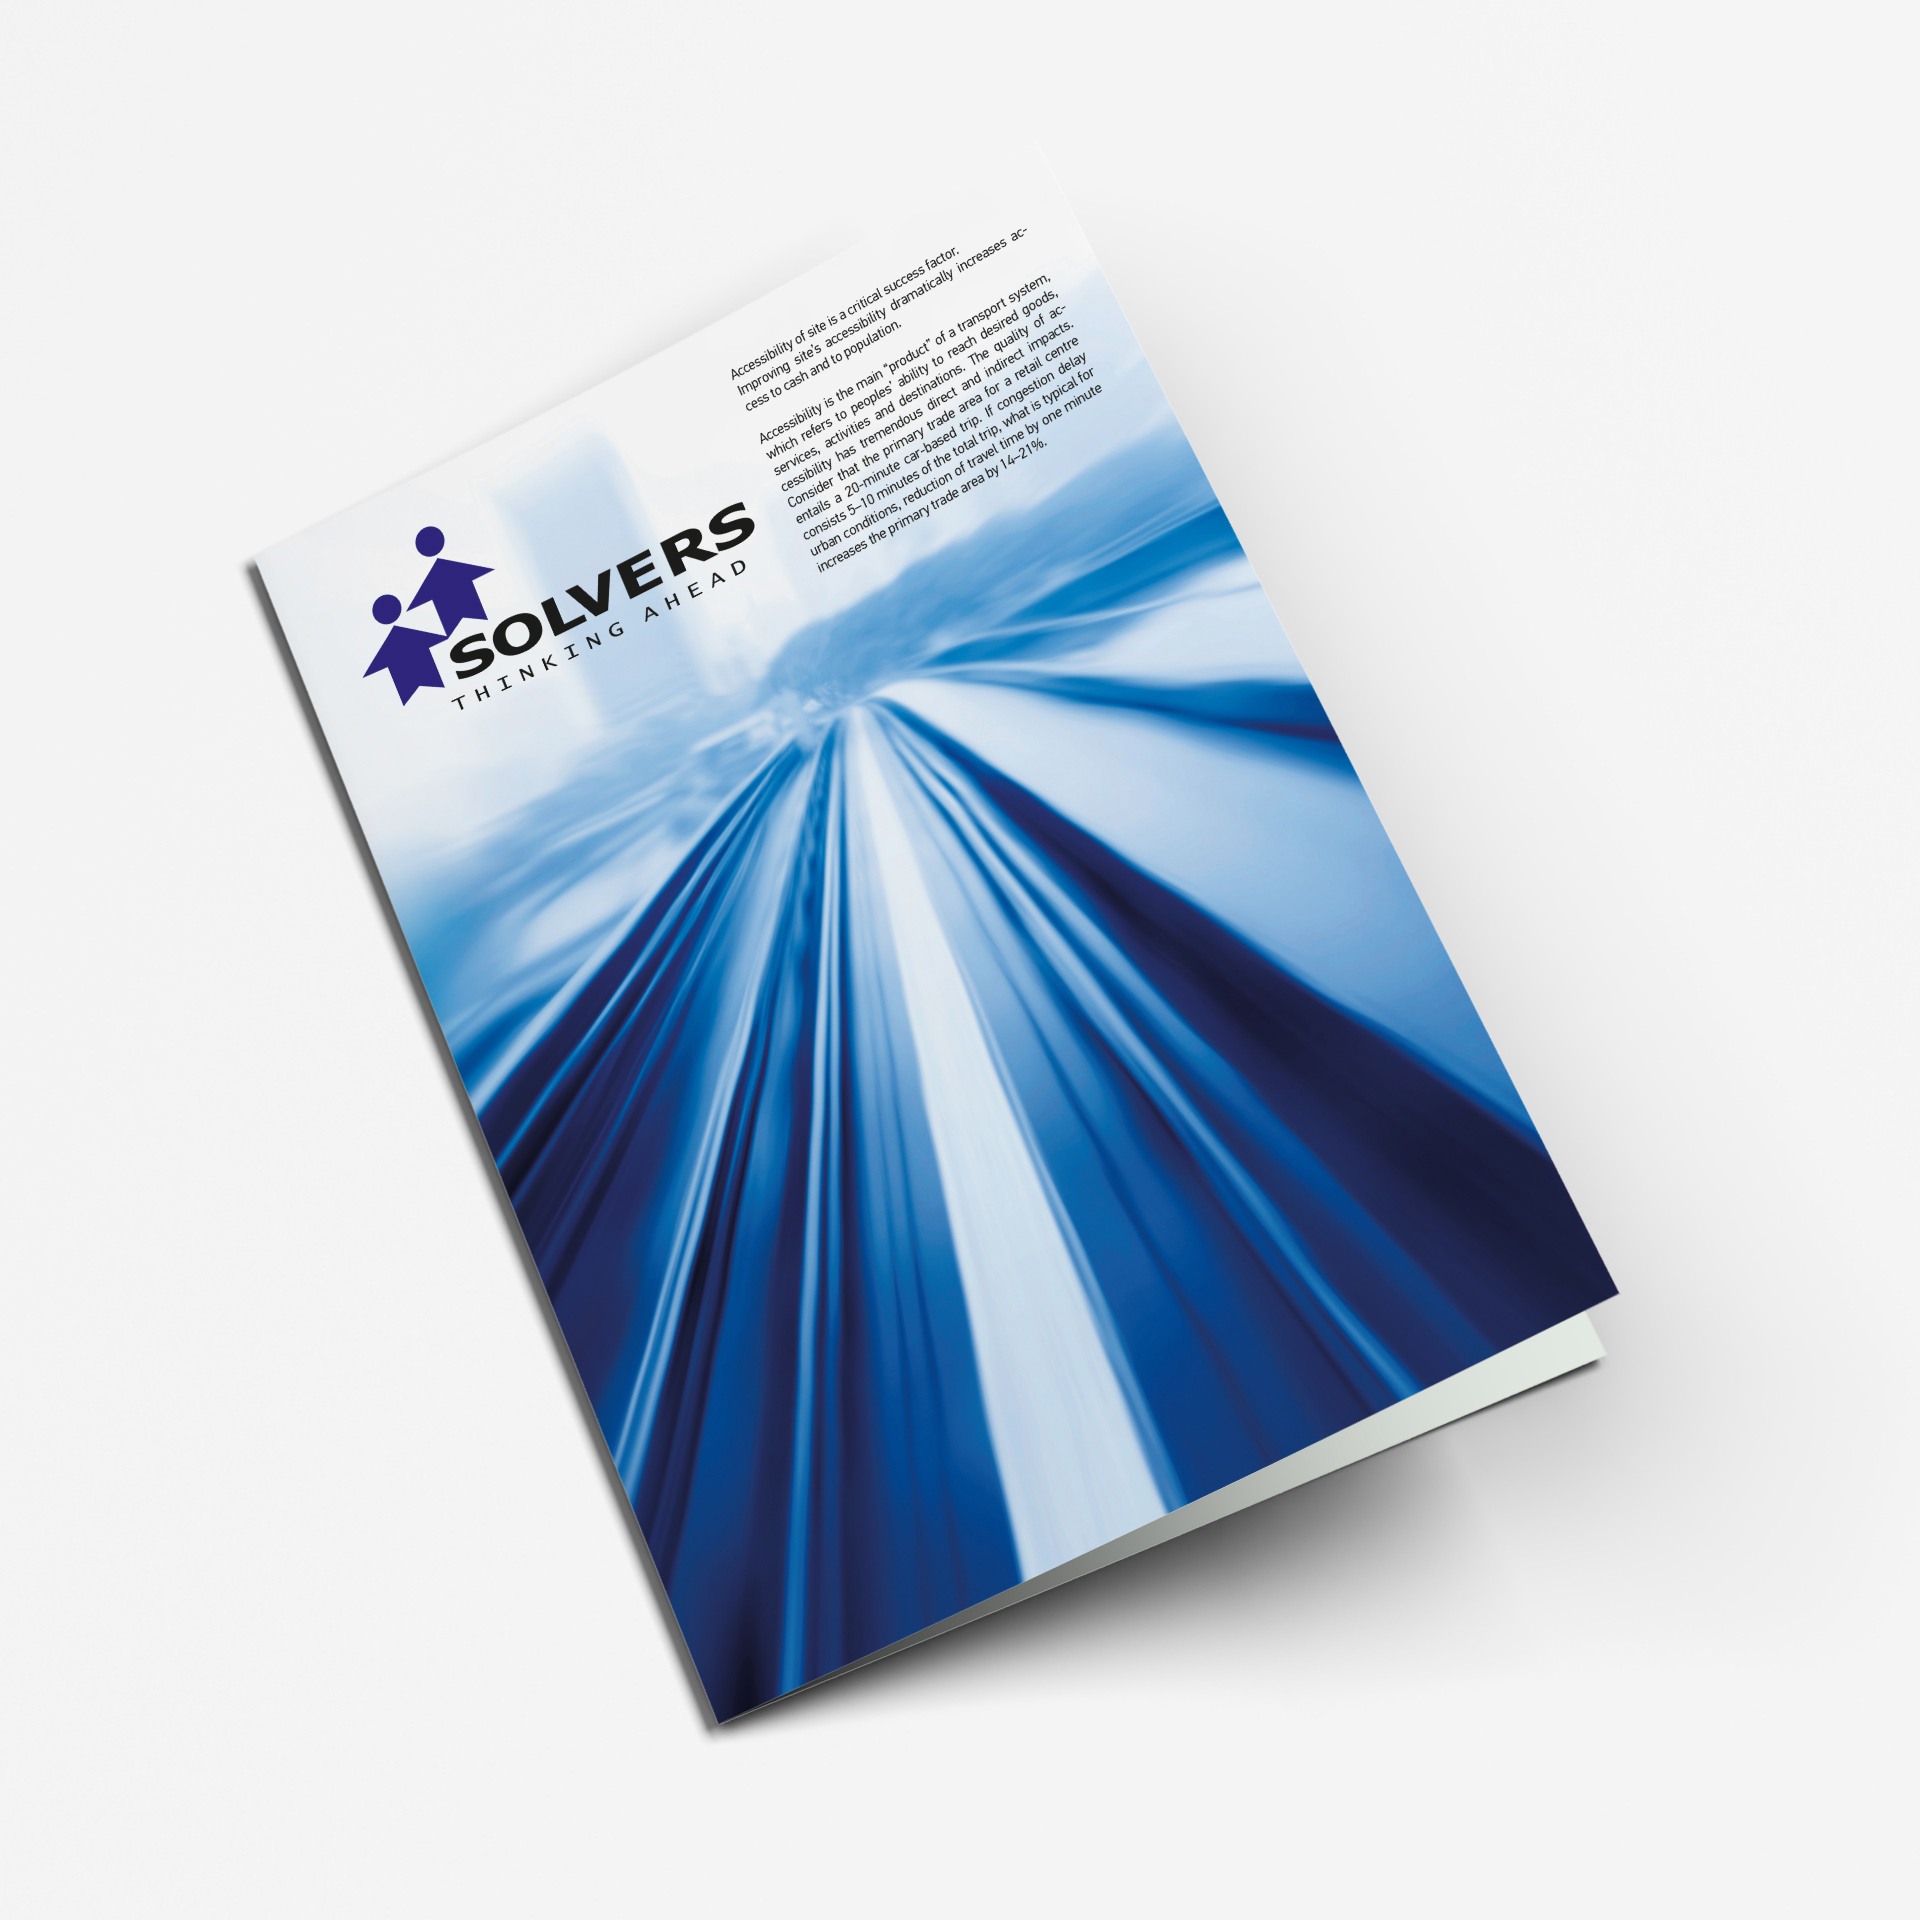 Solvers booklet